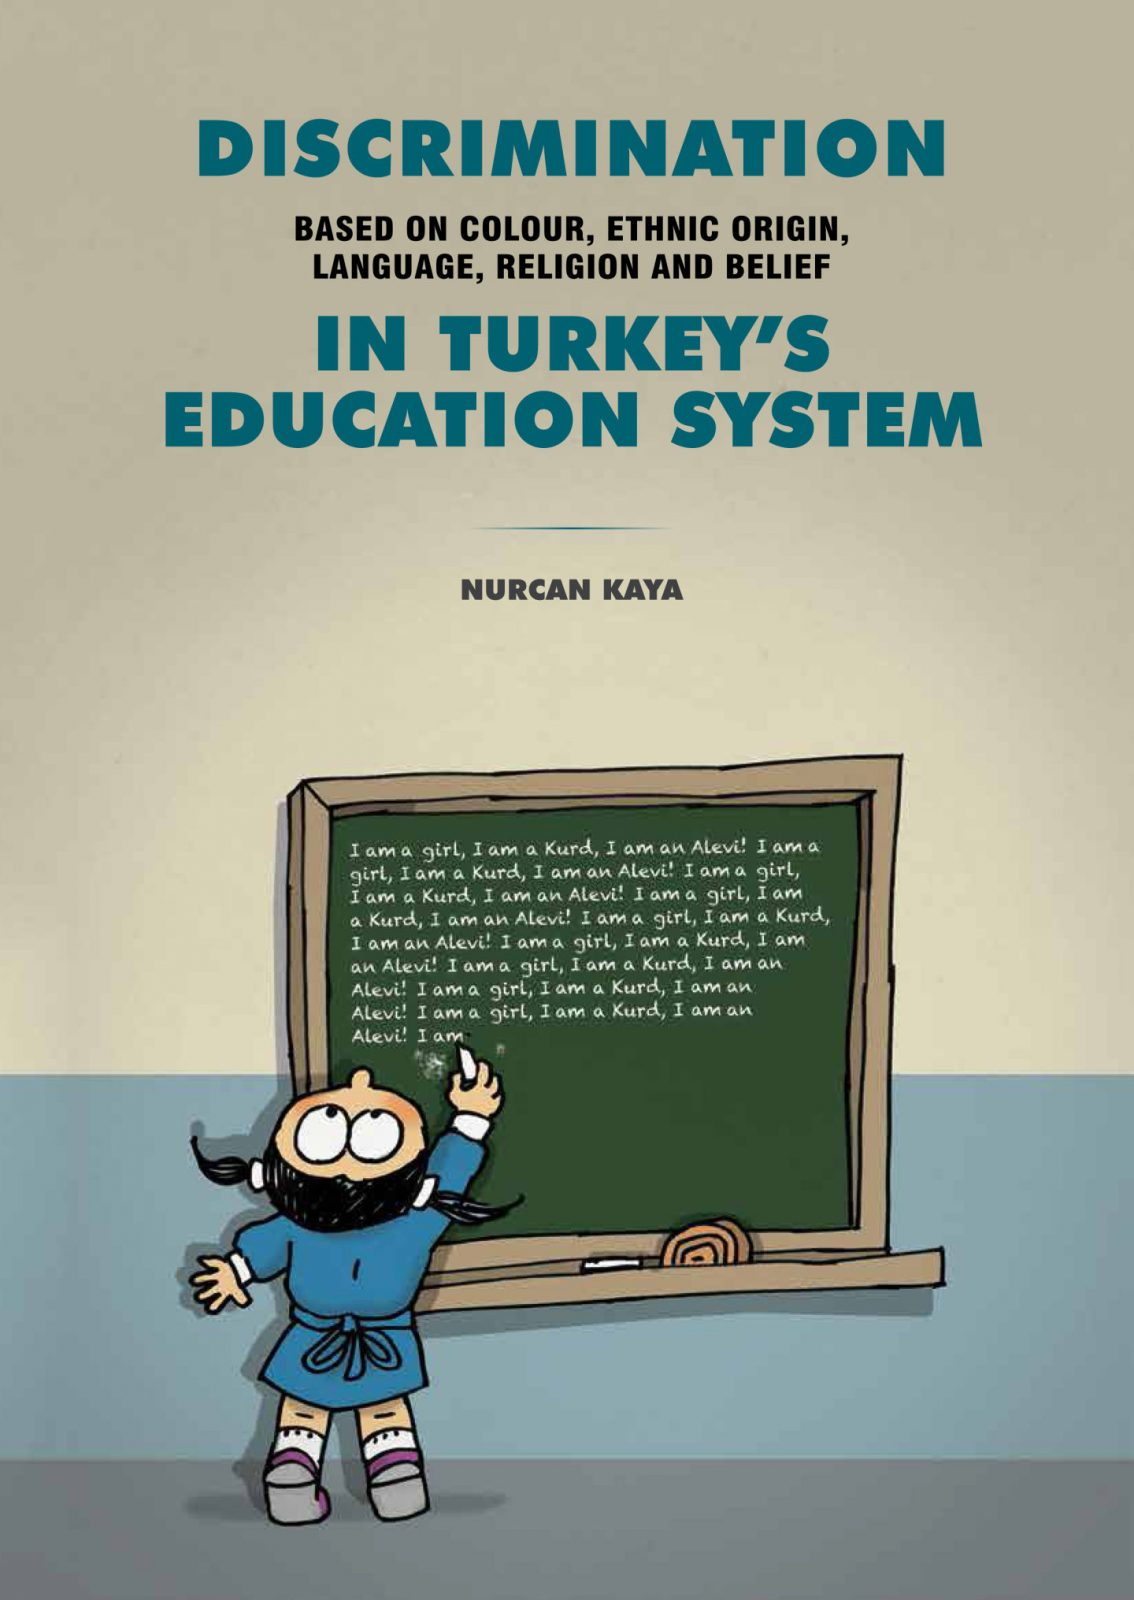 Discrimination based on Colour, Ethnic Origin, Language, Religion and Belief in Turkey's Education System